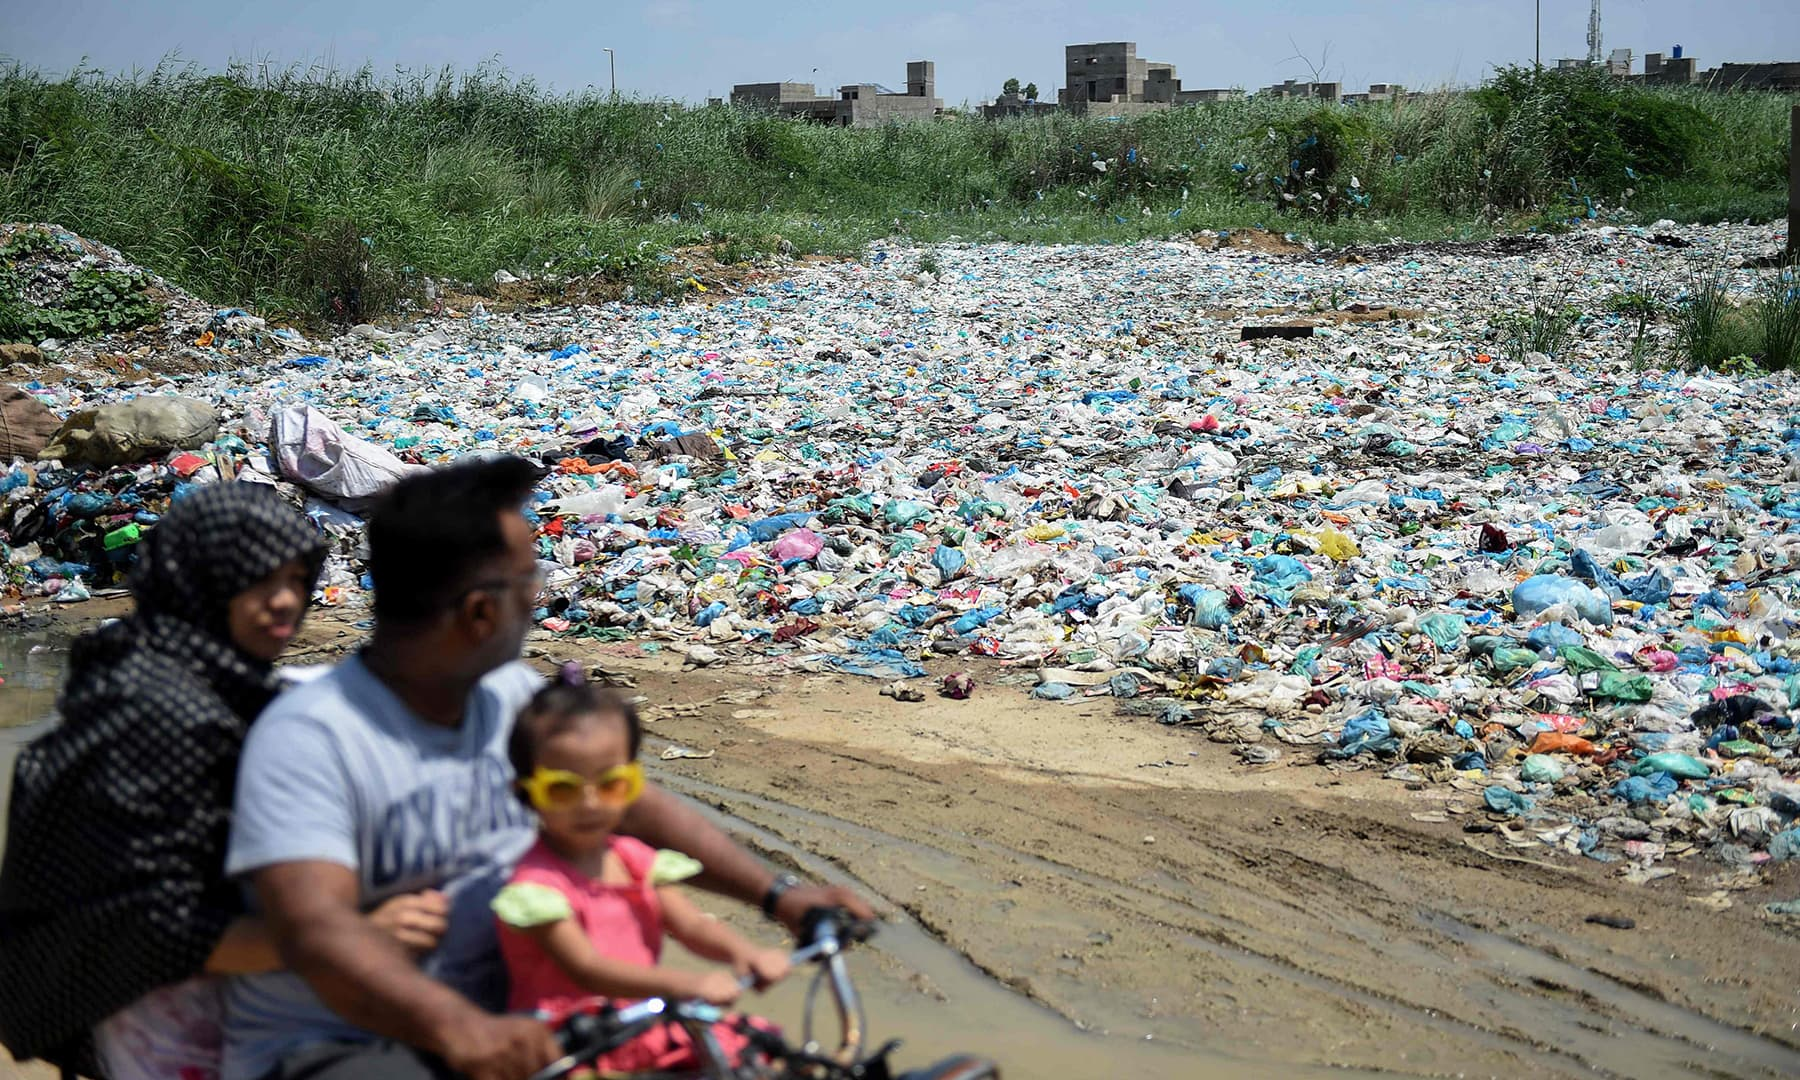 In this picture taken on September 4, a family rides past a garbage dump at a residential area in Pakistan's port city of Karachi. — AFP